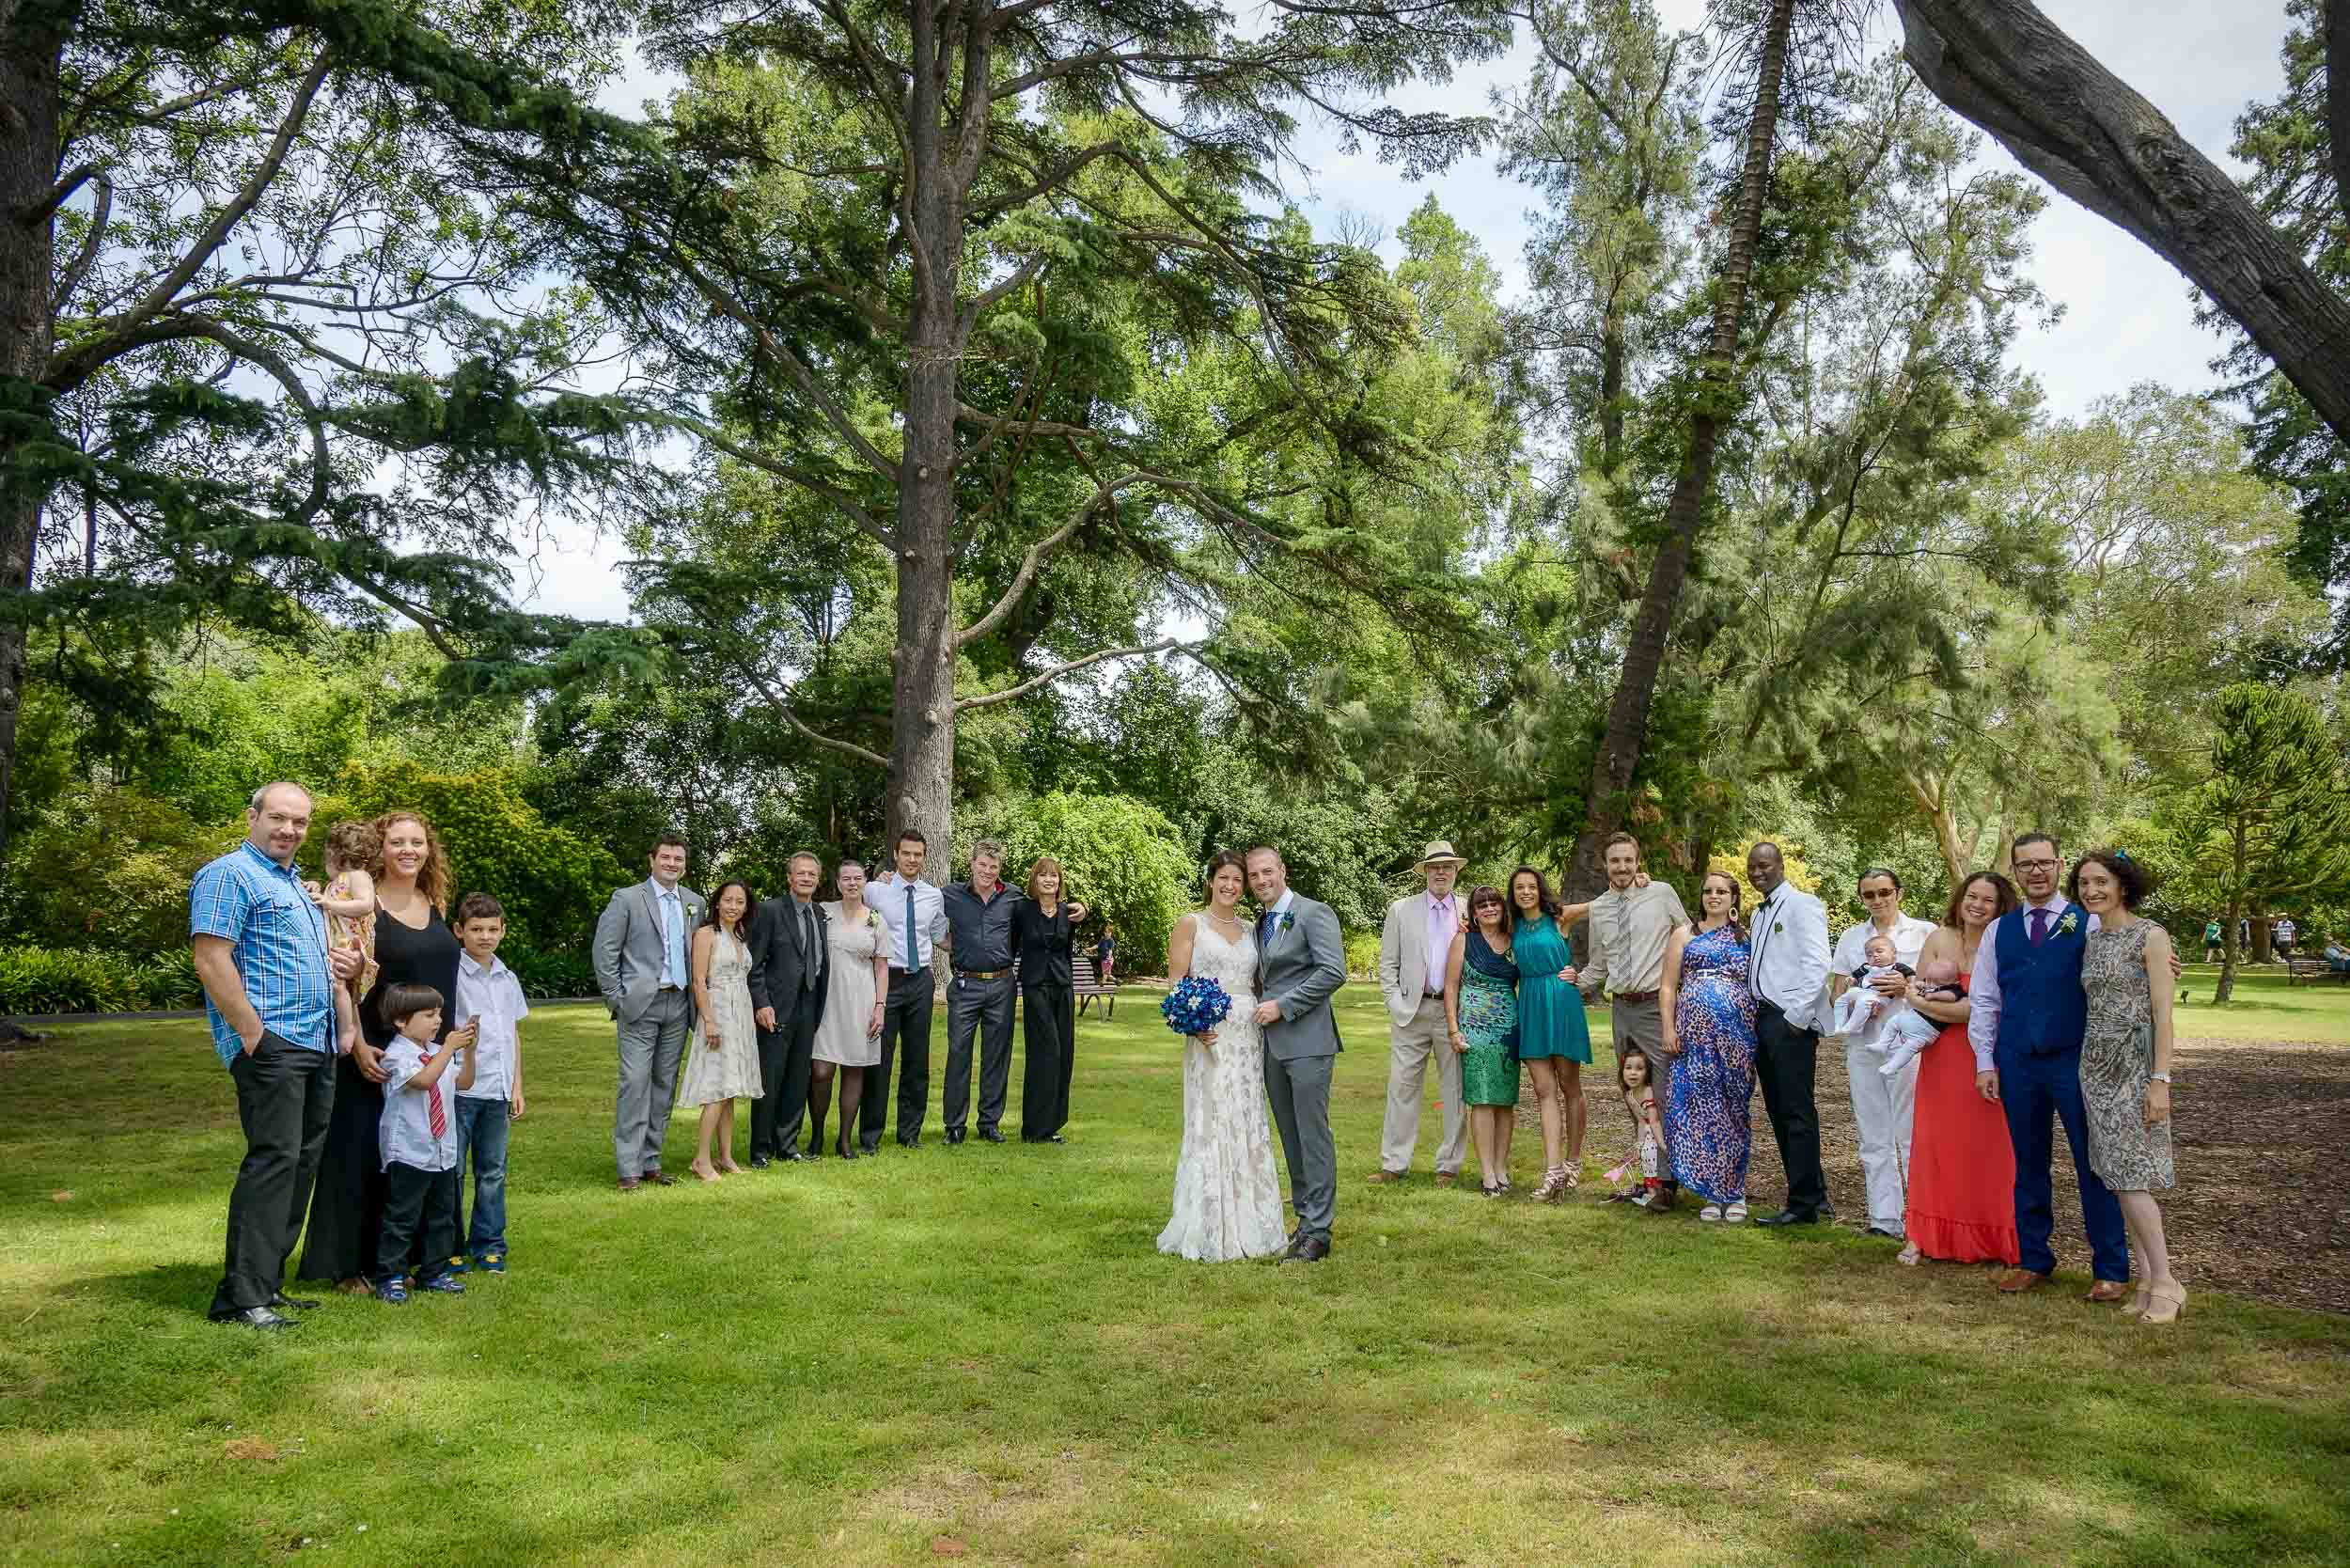 A photo with members from both the    bride and groom's extended families    at a lovely outdoor location.